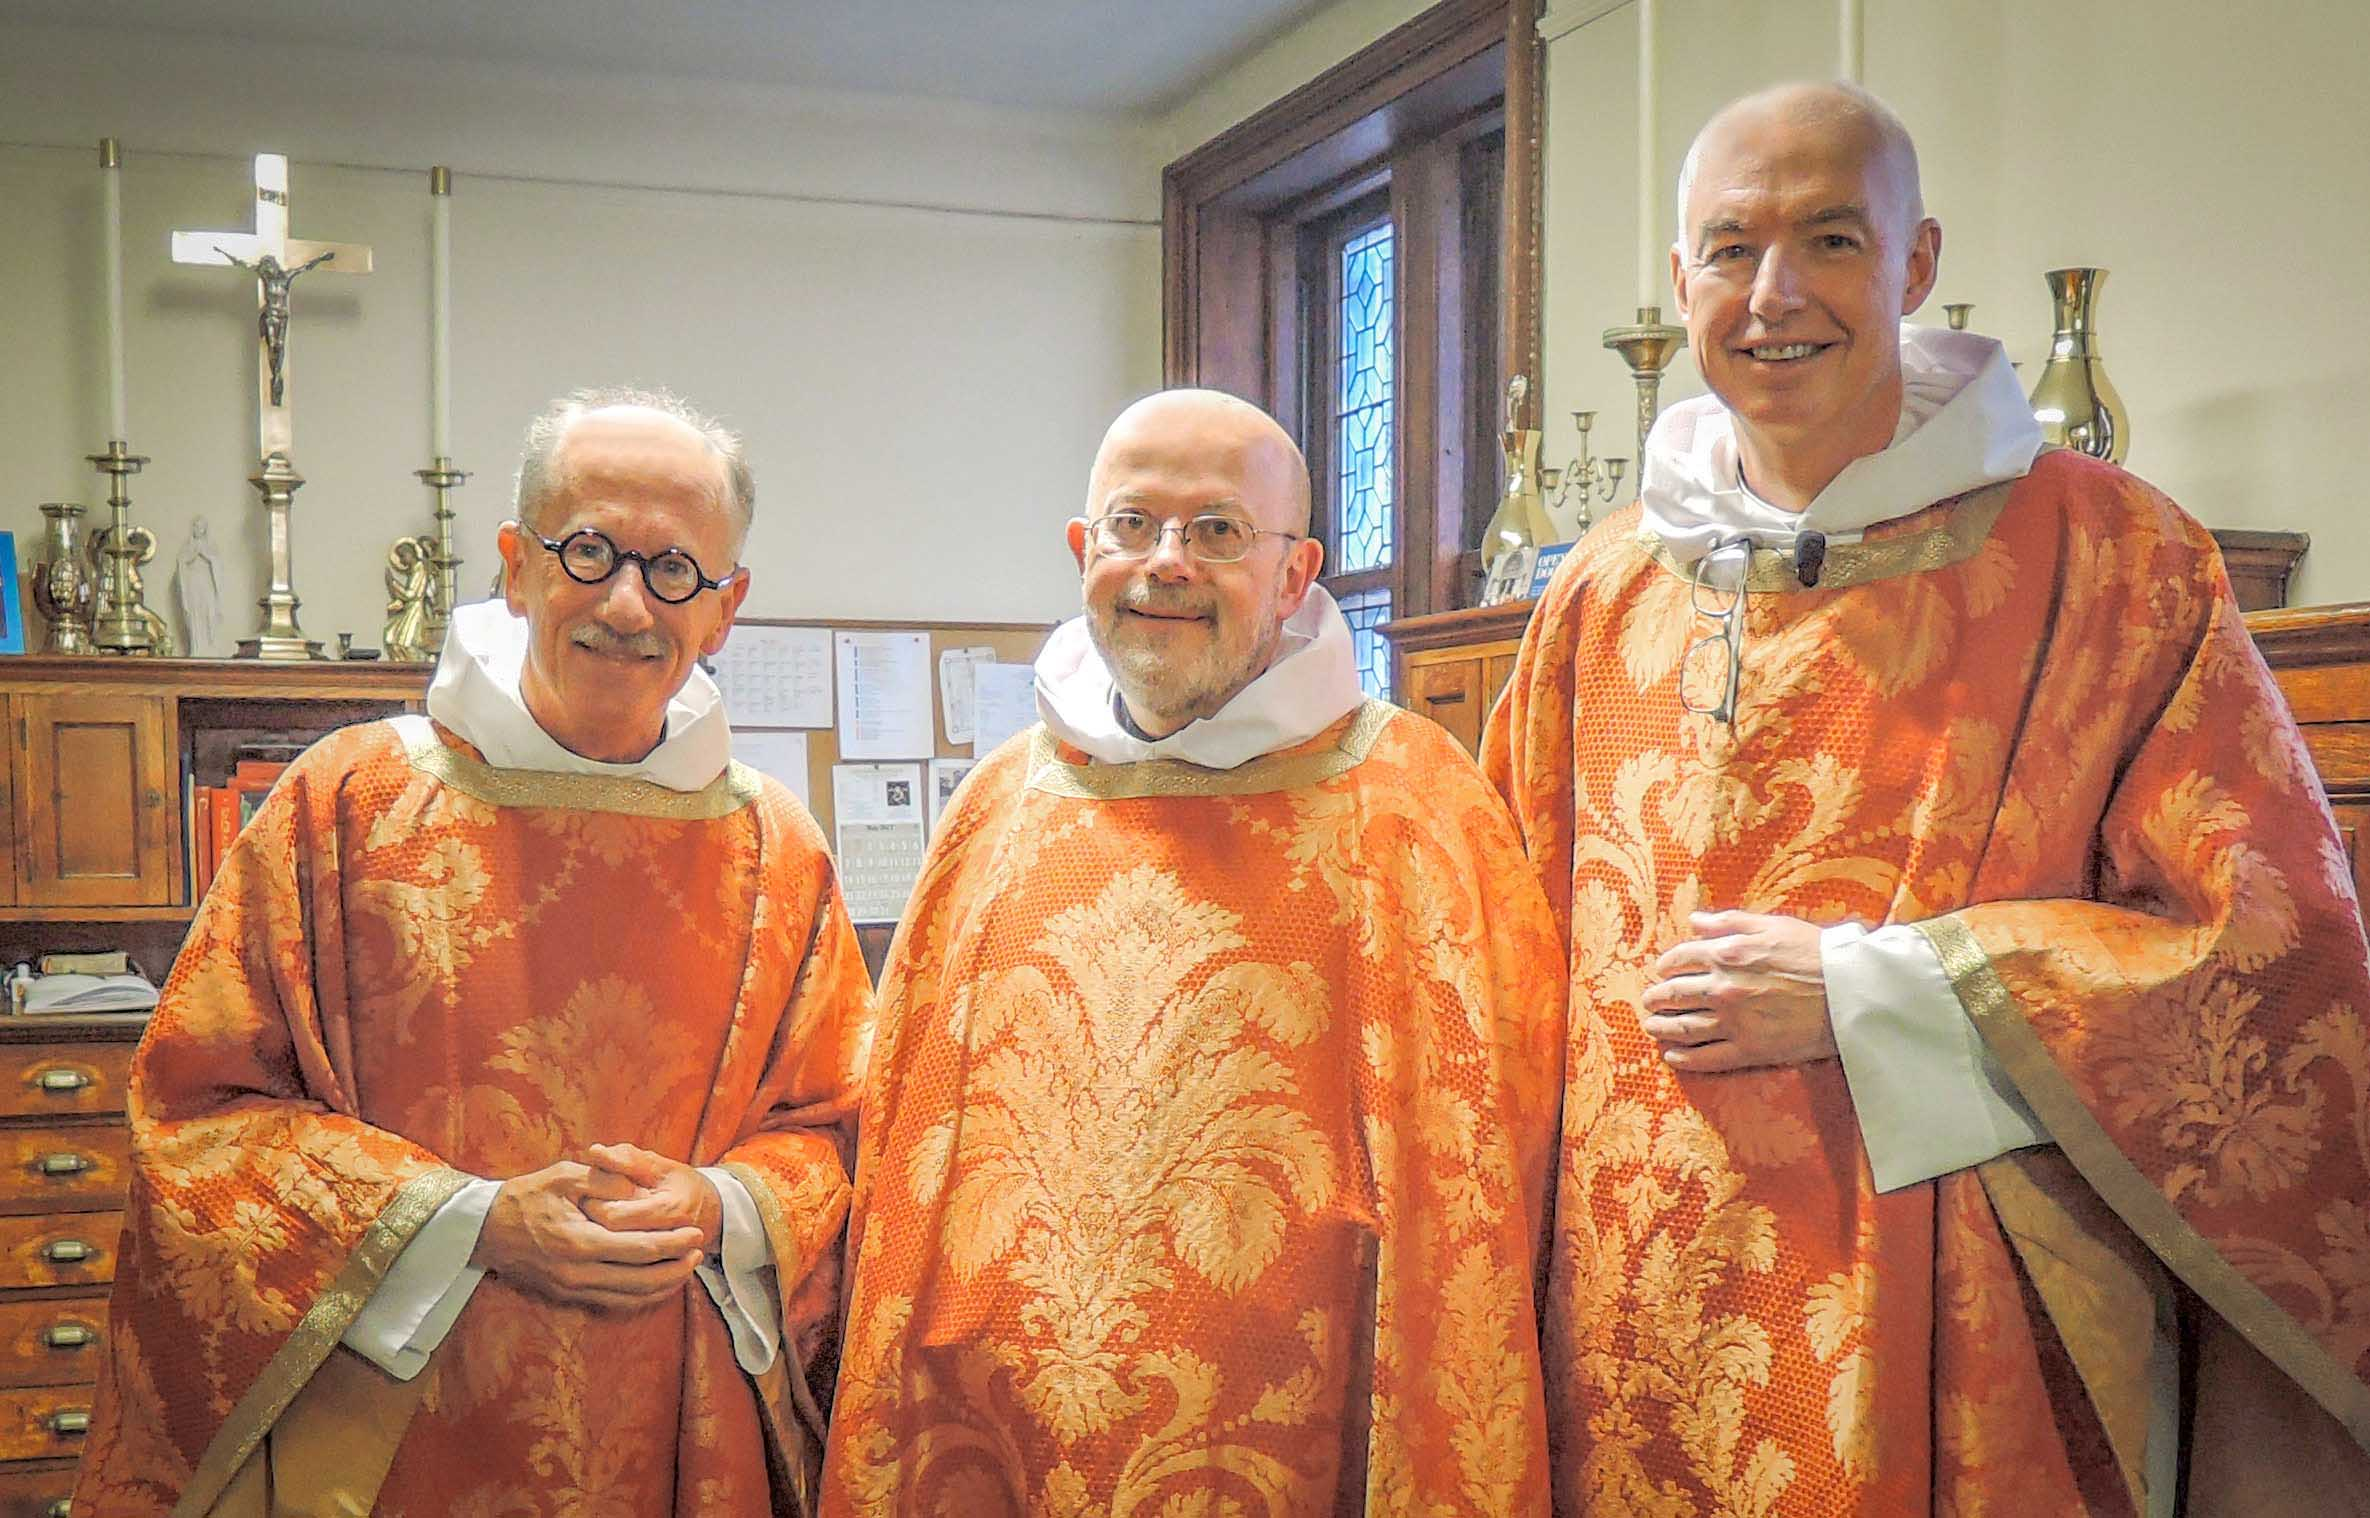 (L. to R.) Father Michael Basden, Father Jay Smith, and Father Stephen Gerth in the Sacristy before Solemn Mass on Ascension Day